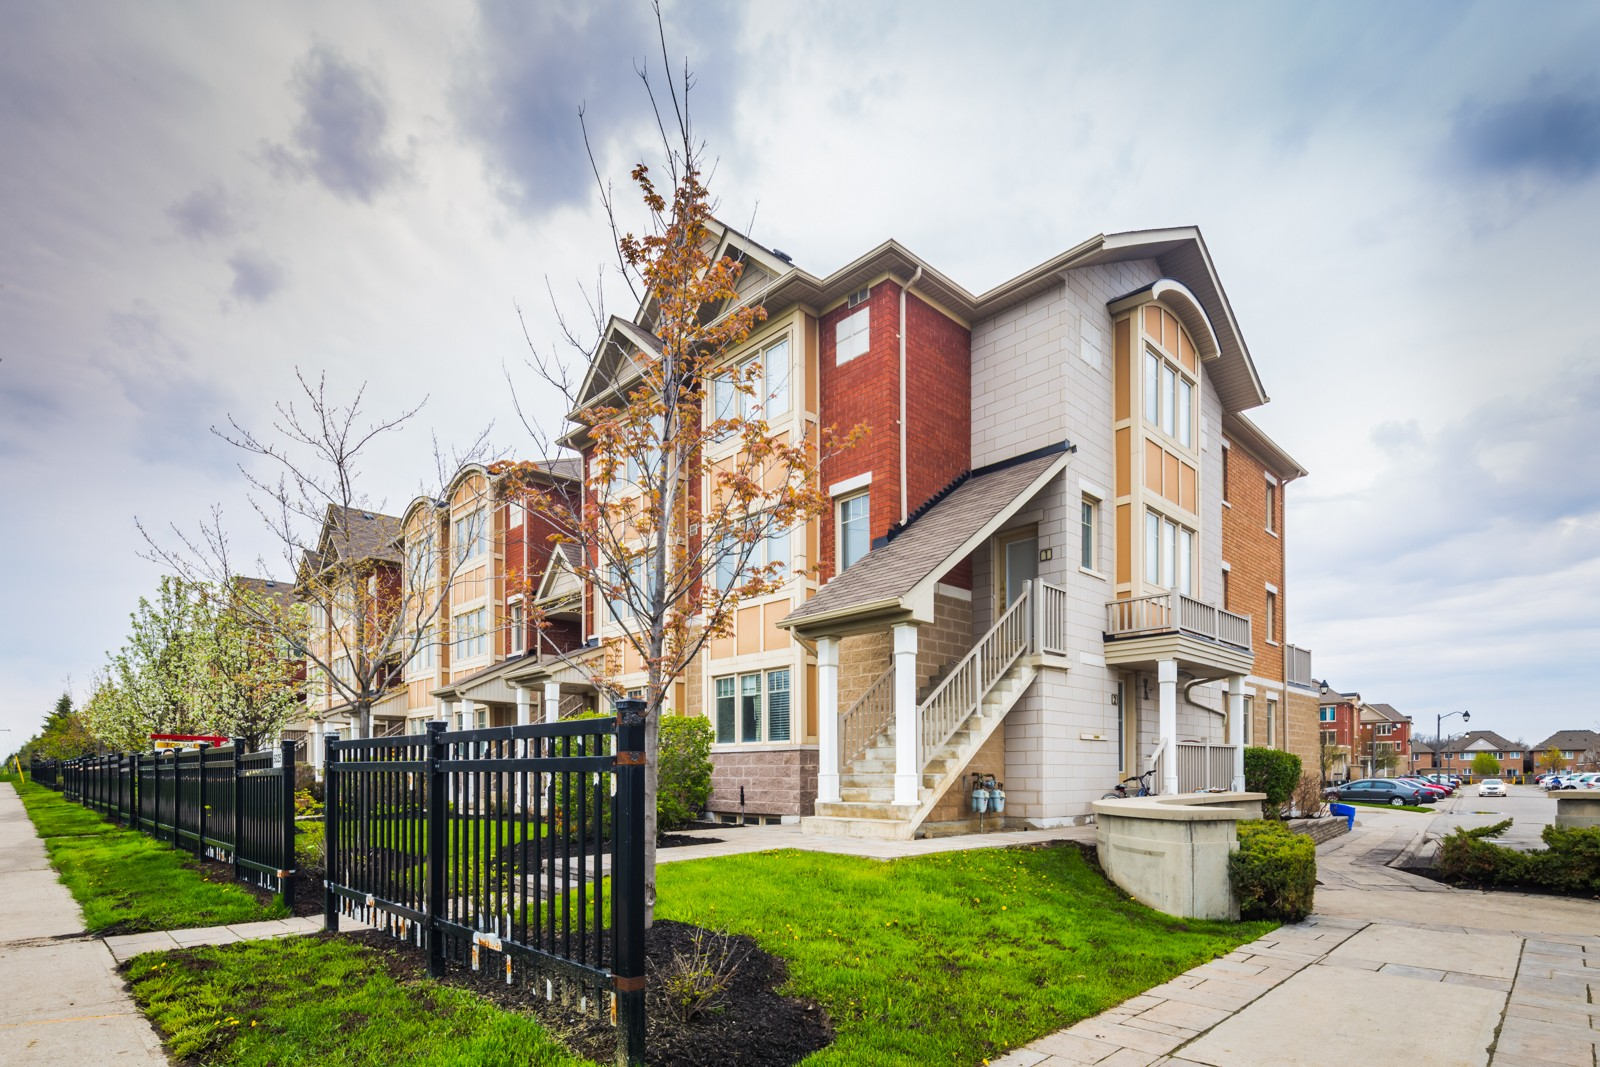 5025-5035 Ninth Line Townhouses at 3985 Eglinton Ave W, Mississauga 1